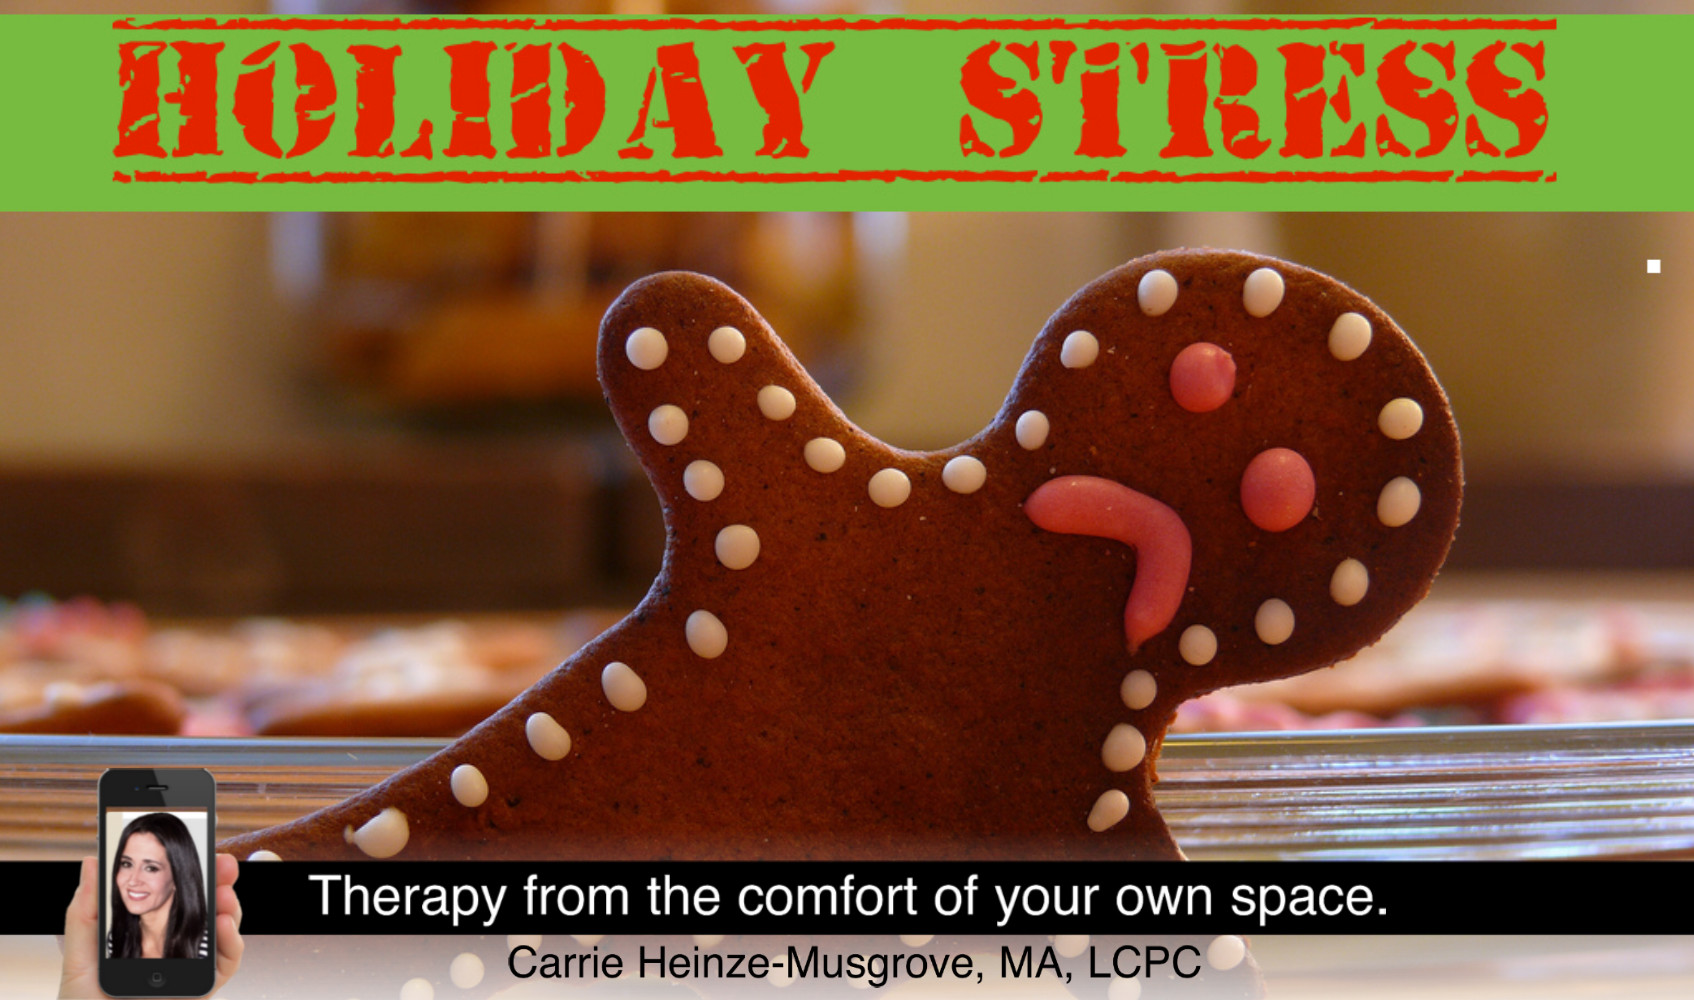 Do you get stressed around the holidays?